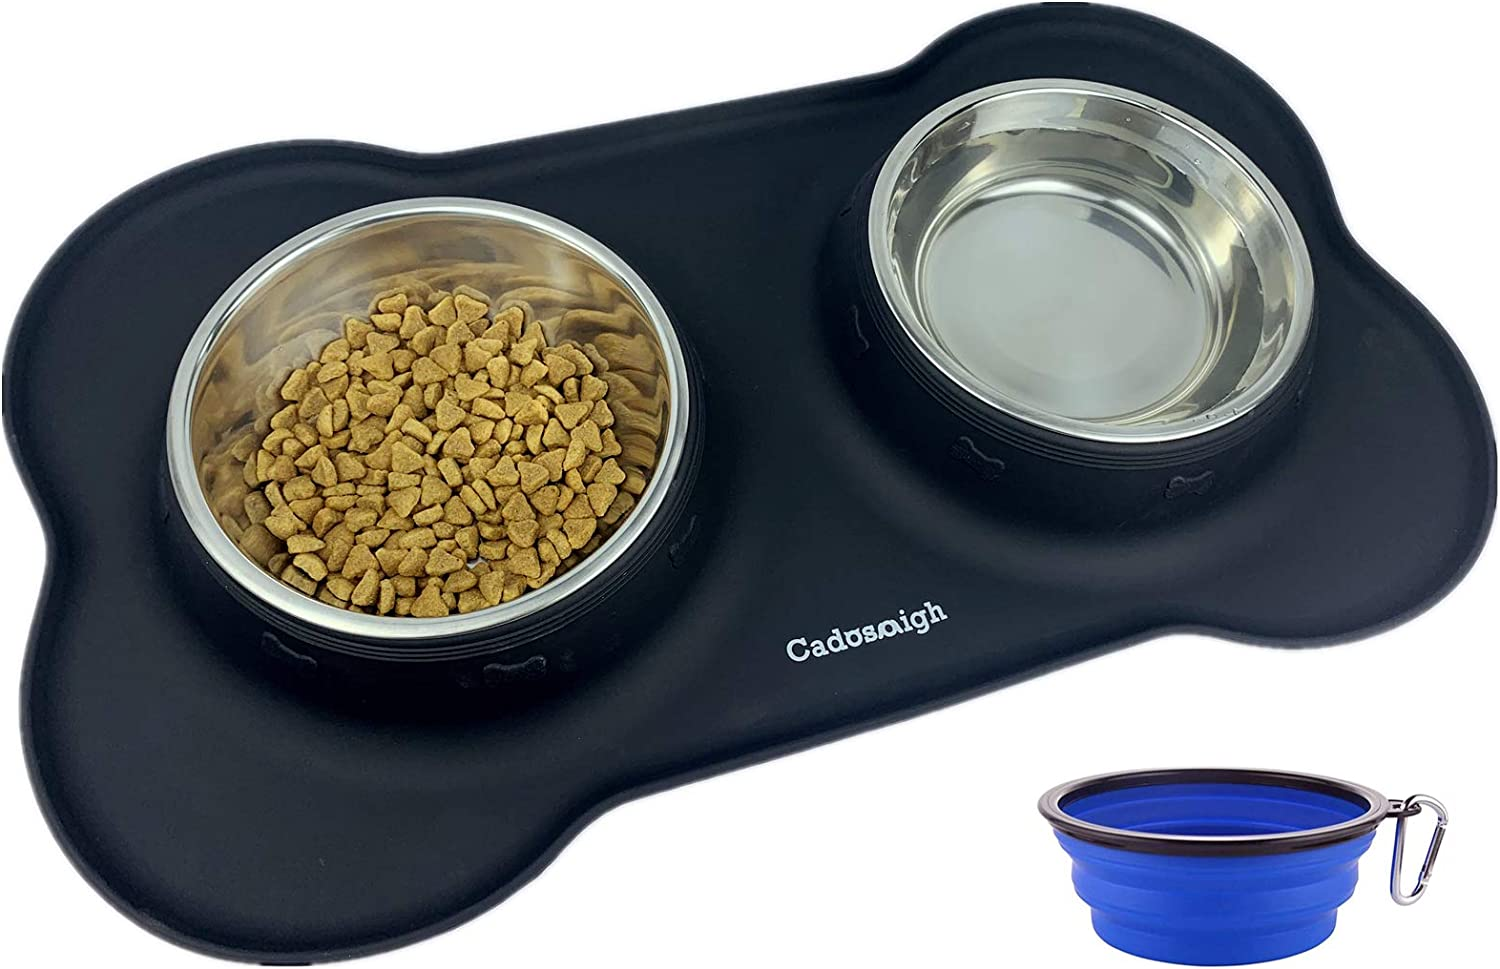 Cadosoigh Pet Double Bowls Non Slip Dog Bowls Stainless Steel Bowls Set with Non-Spill Silicone Mats Tray for Small Middle cat Puppy… (Black)